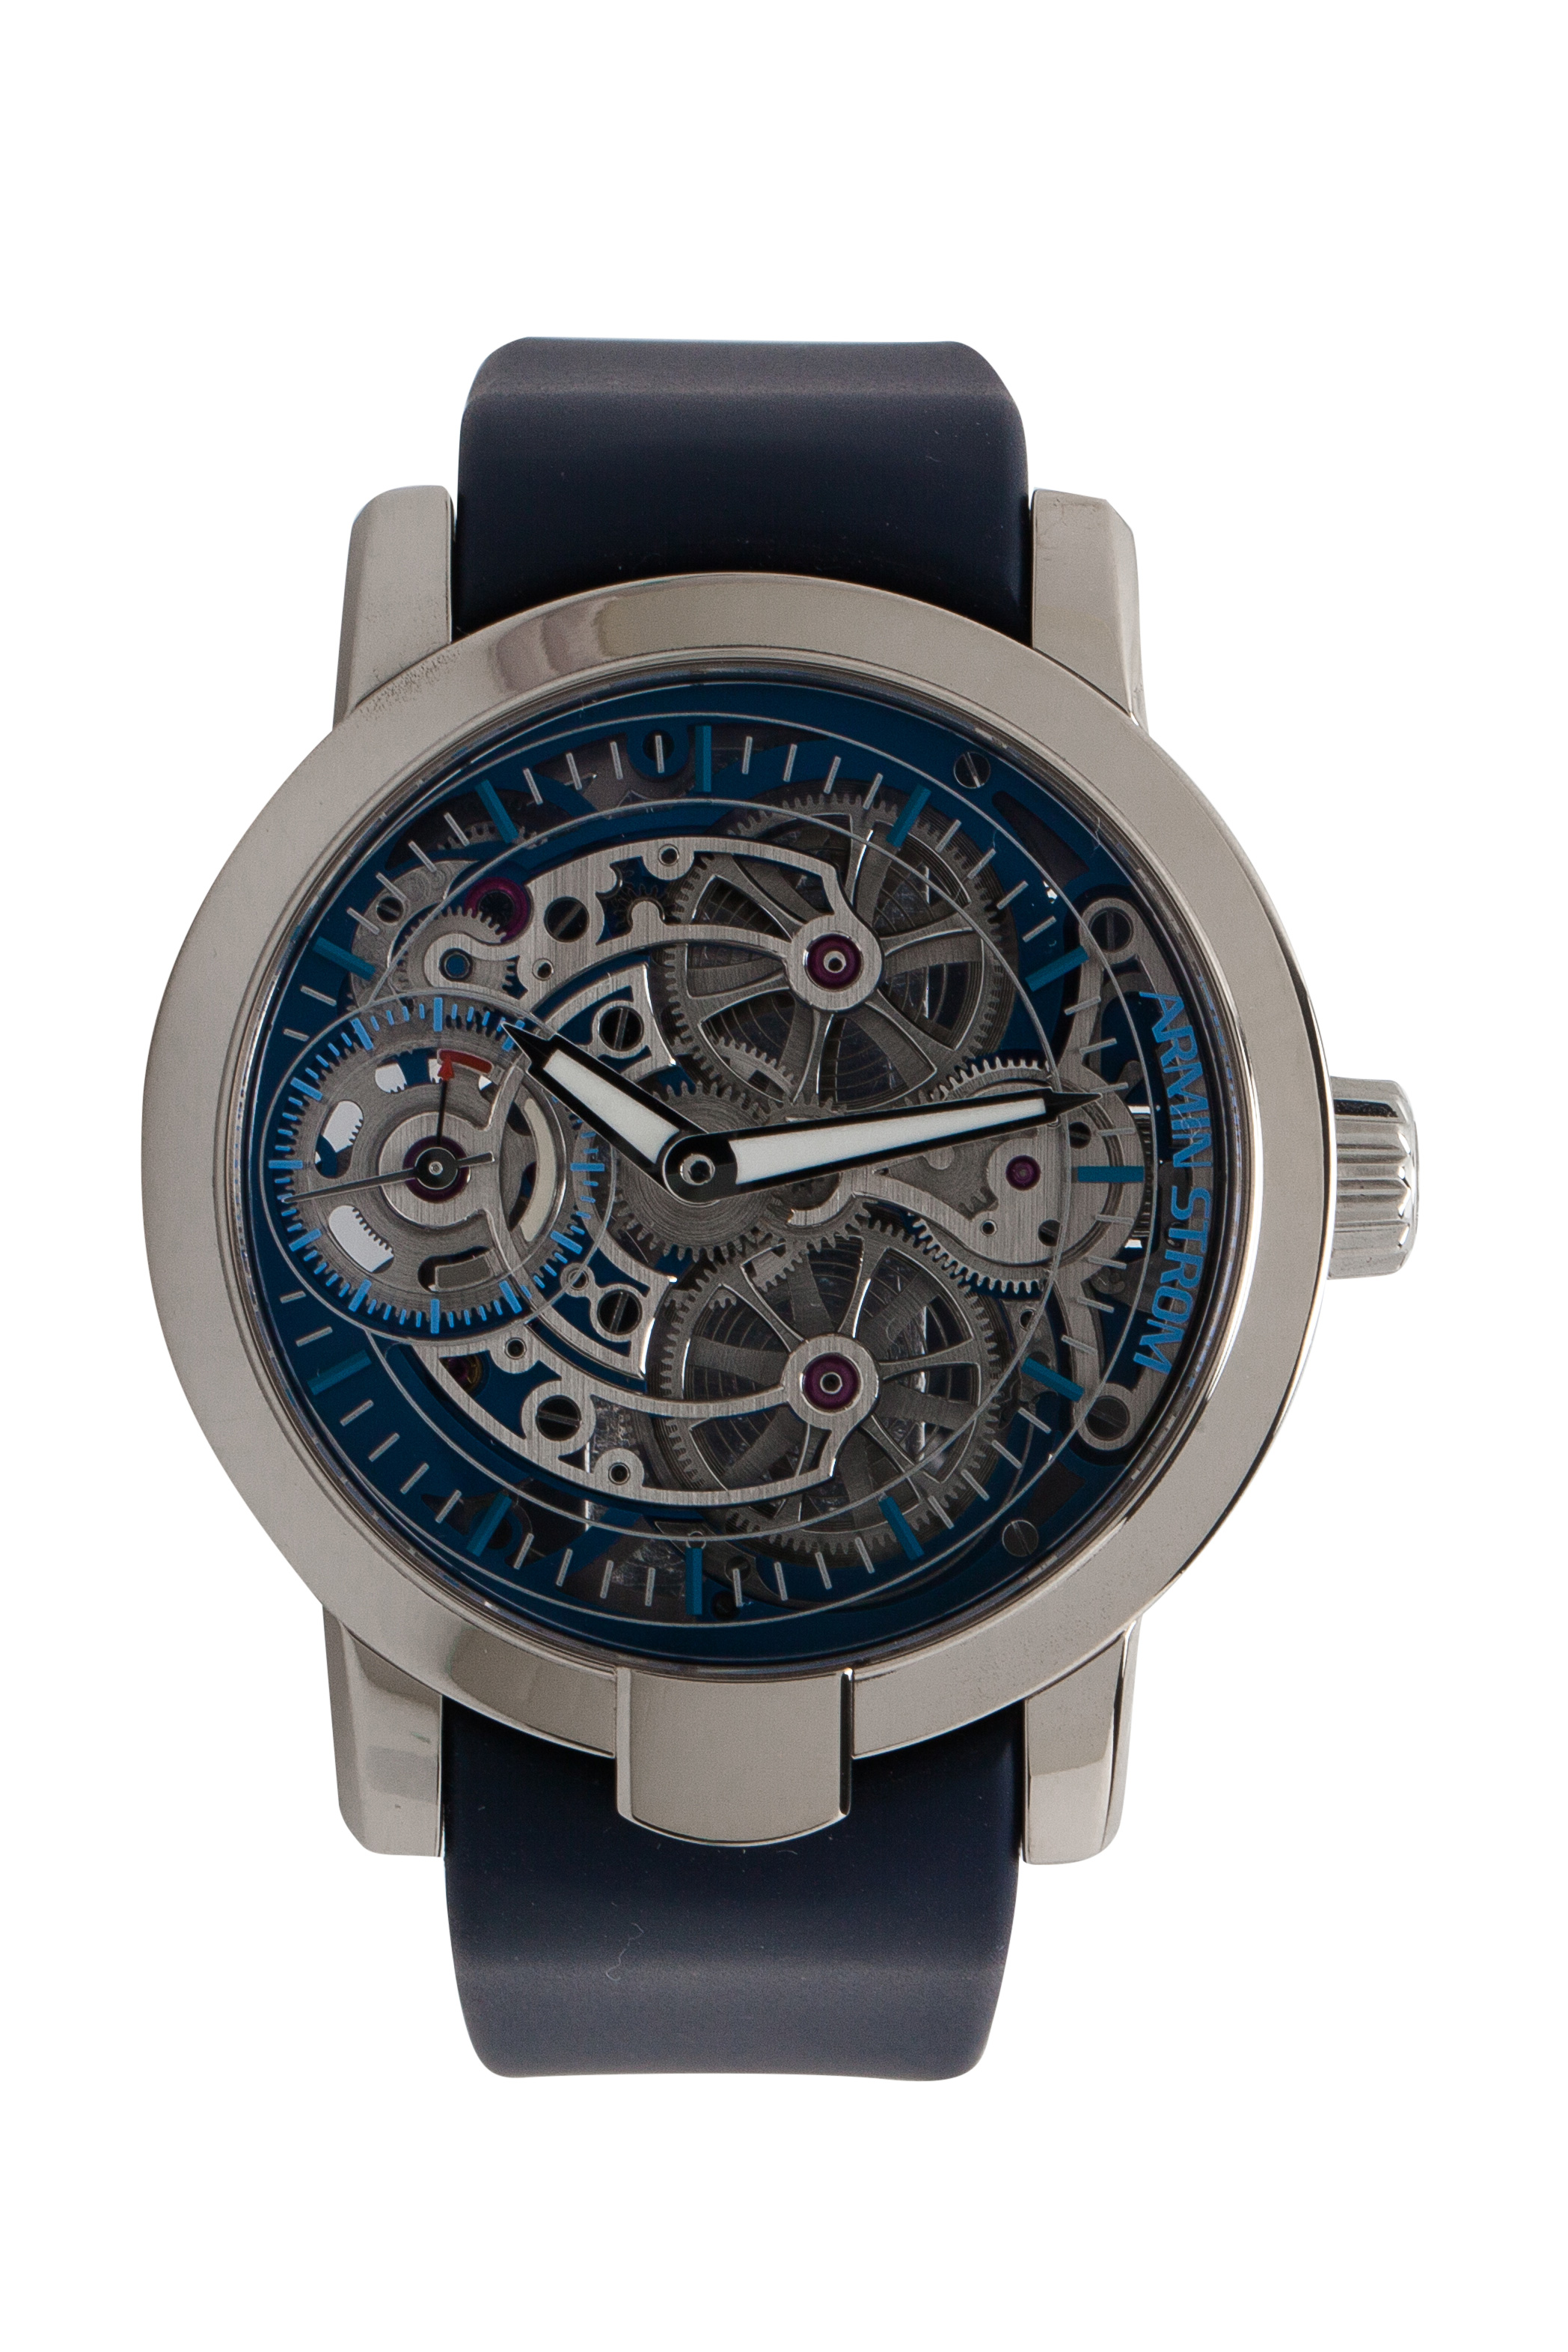 Armin Strom Skeleton White Gold Pure Water Limited Edition No. 50/50 Men's Wristwatch 43MM